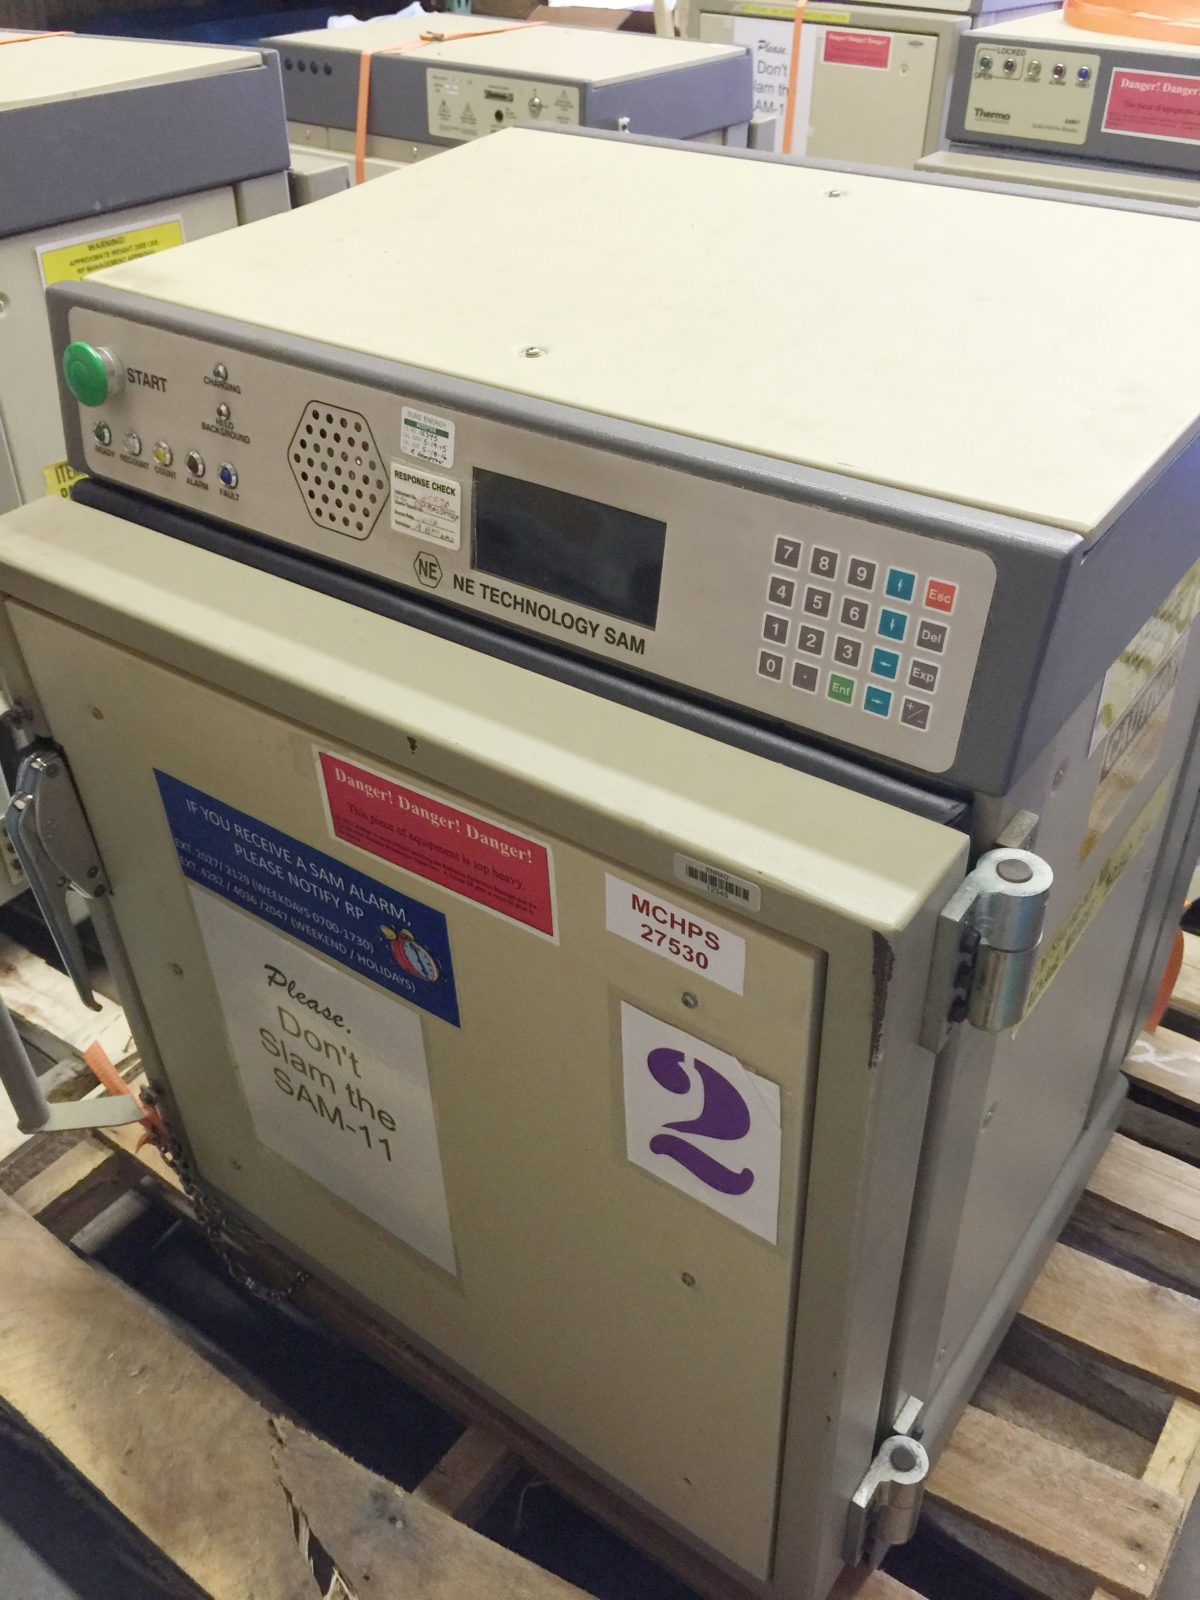 ThermoFisher (Eberline) SAM-11 Small Article Monitor 4C 2D. Two Doors